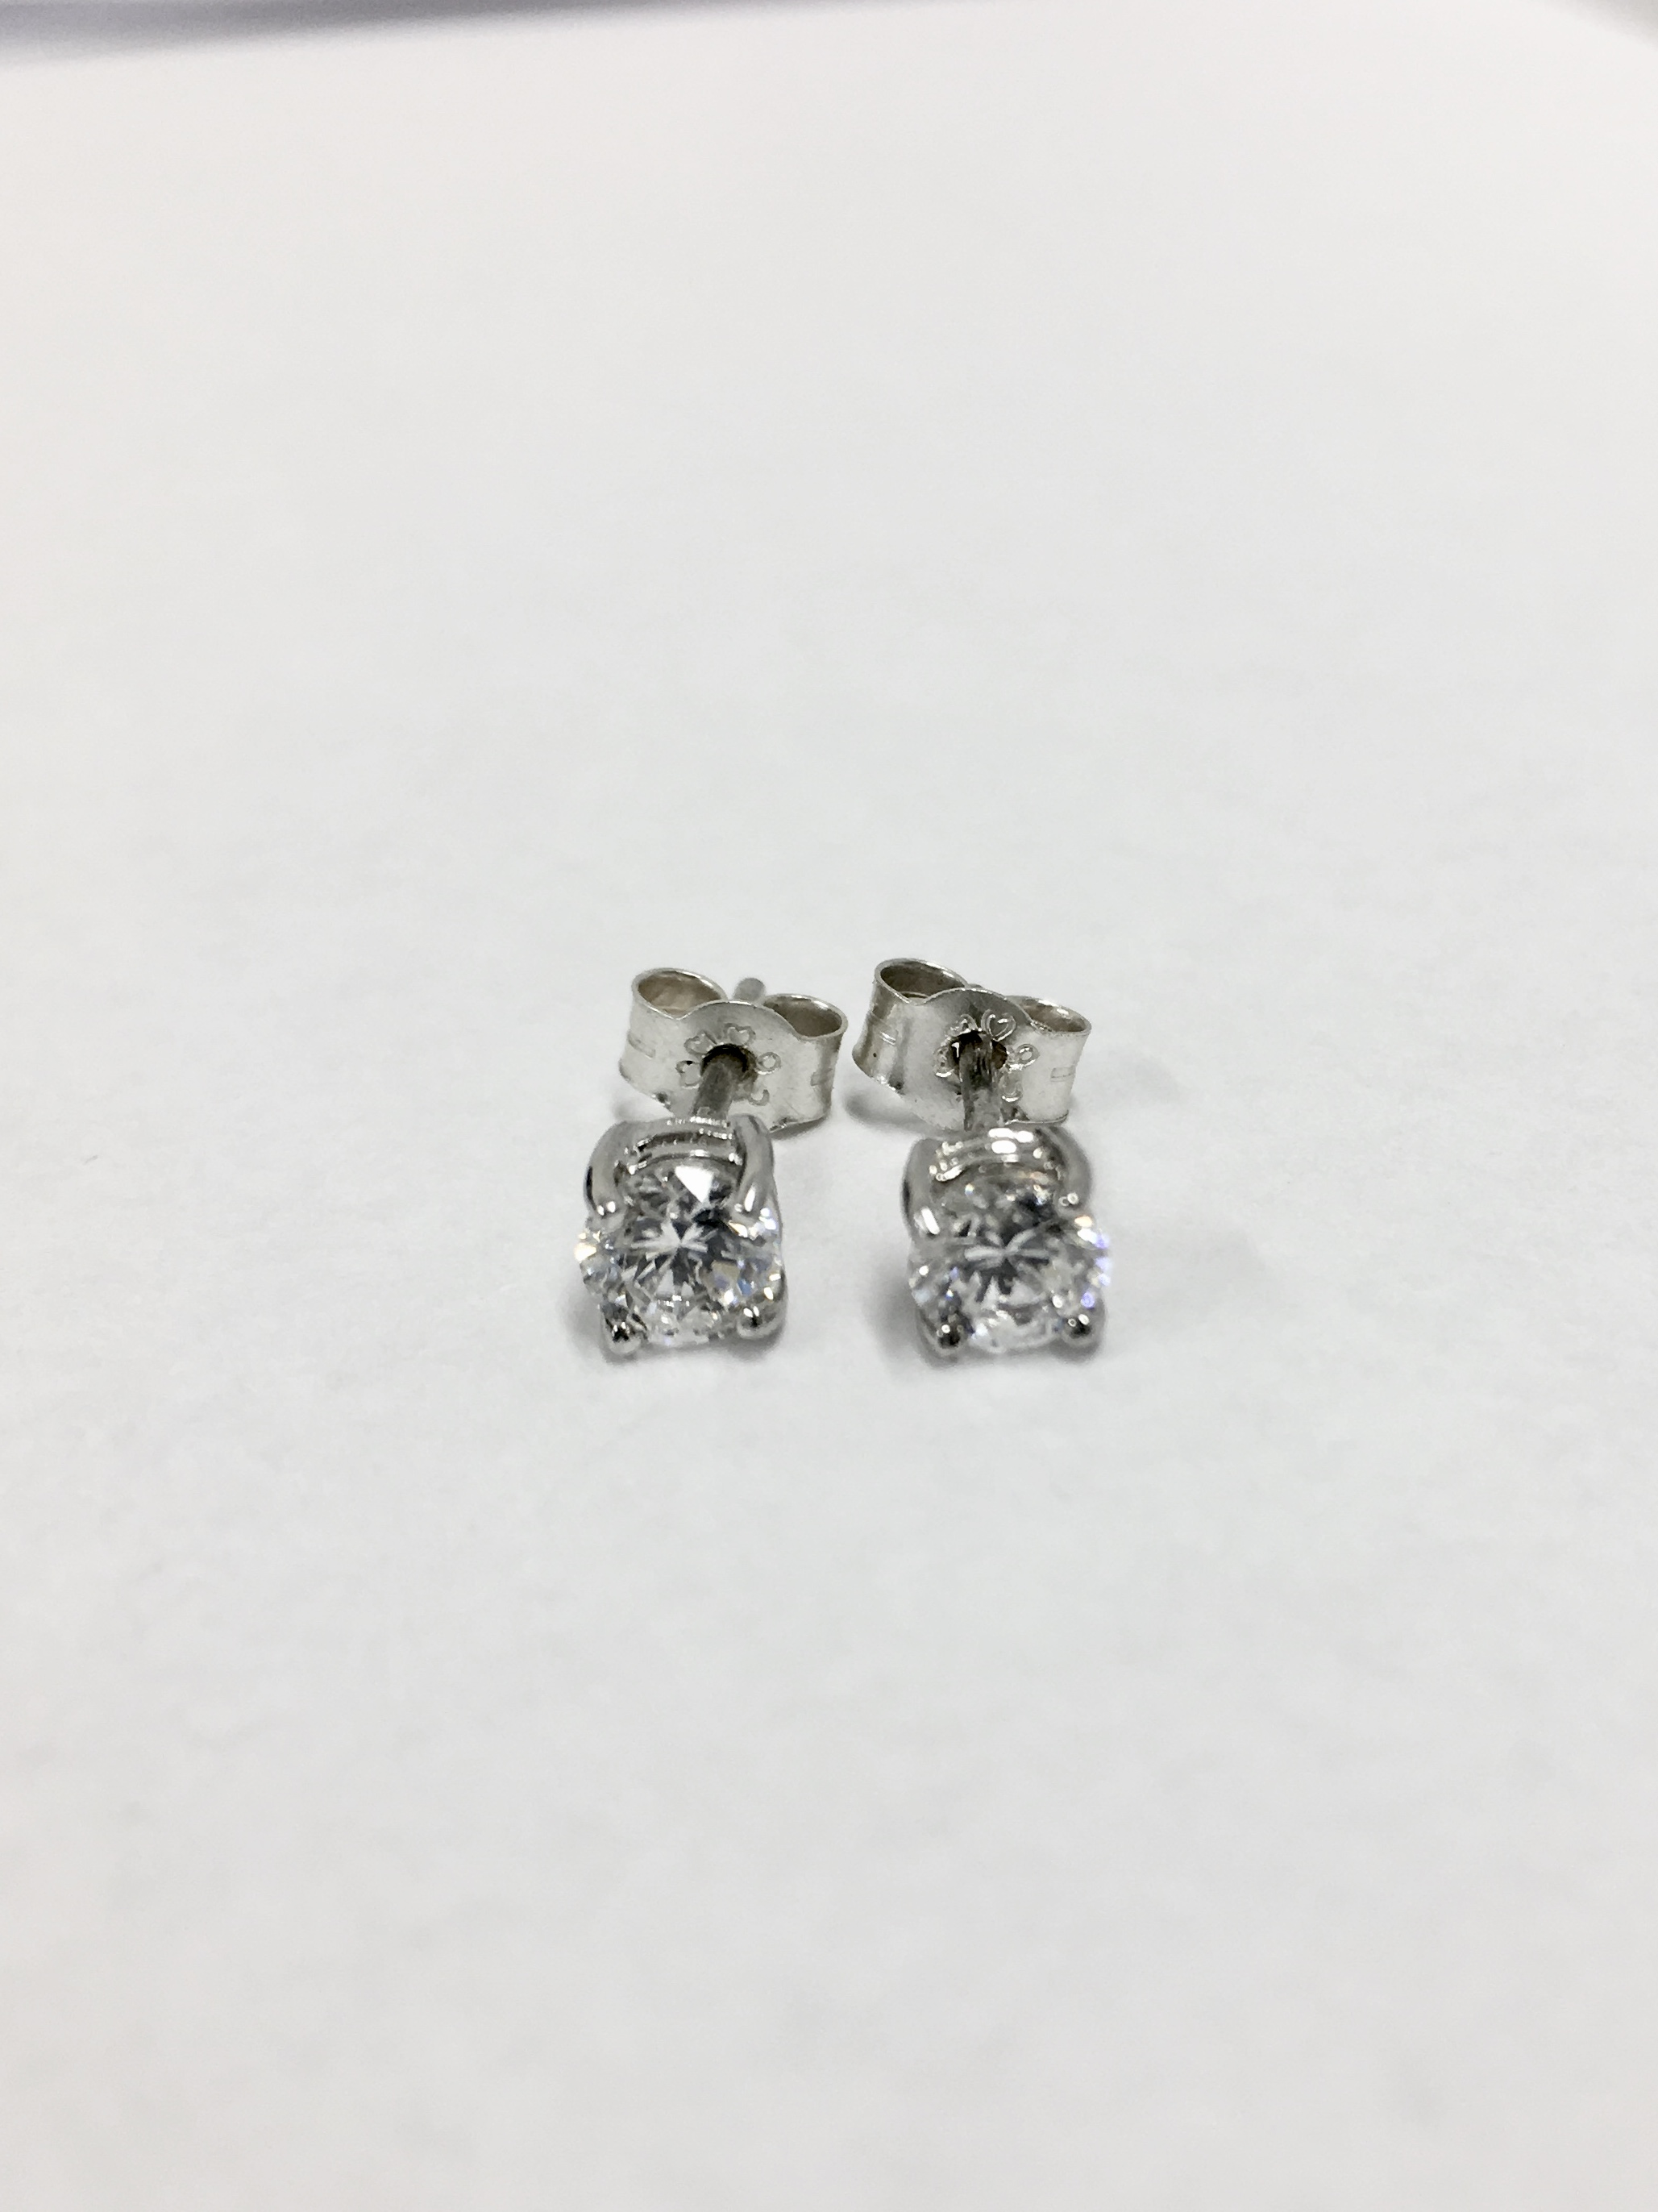 jewellery solitaire stud diamond jackets earring lugaro earrings